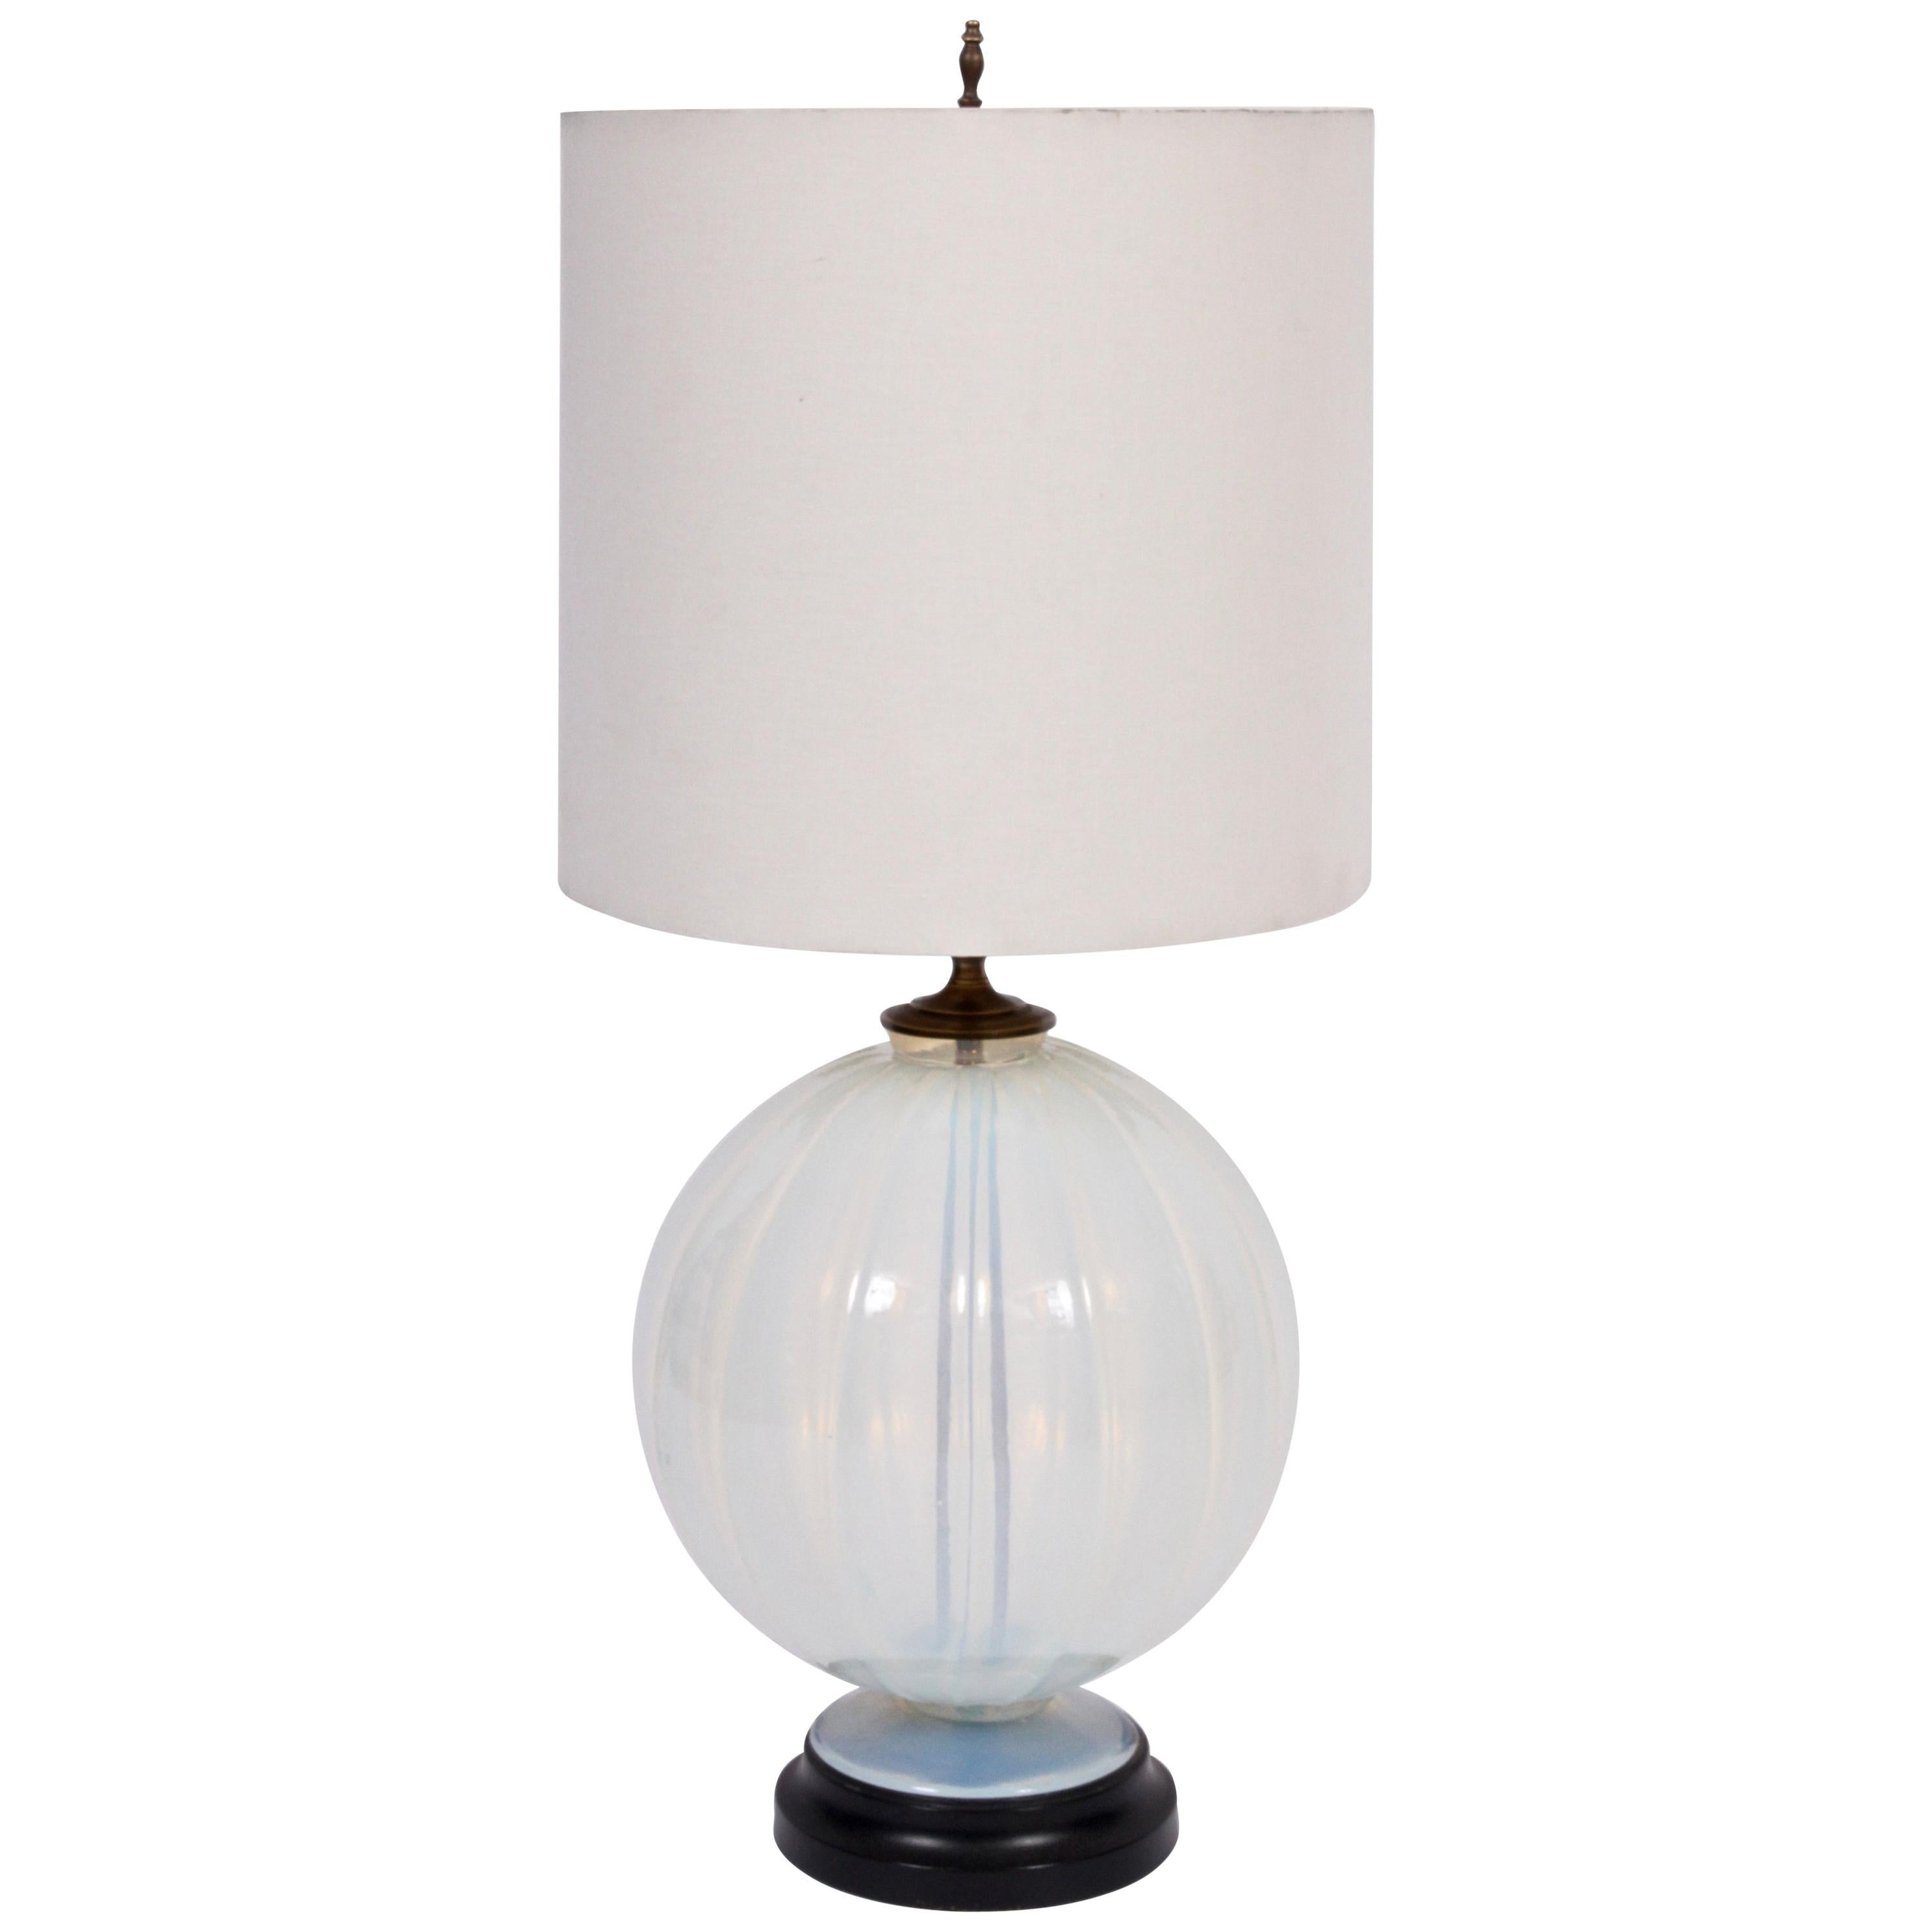 Tall Marius-Ernest Sabino Opalescent Glass Table Lamp, 1930s